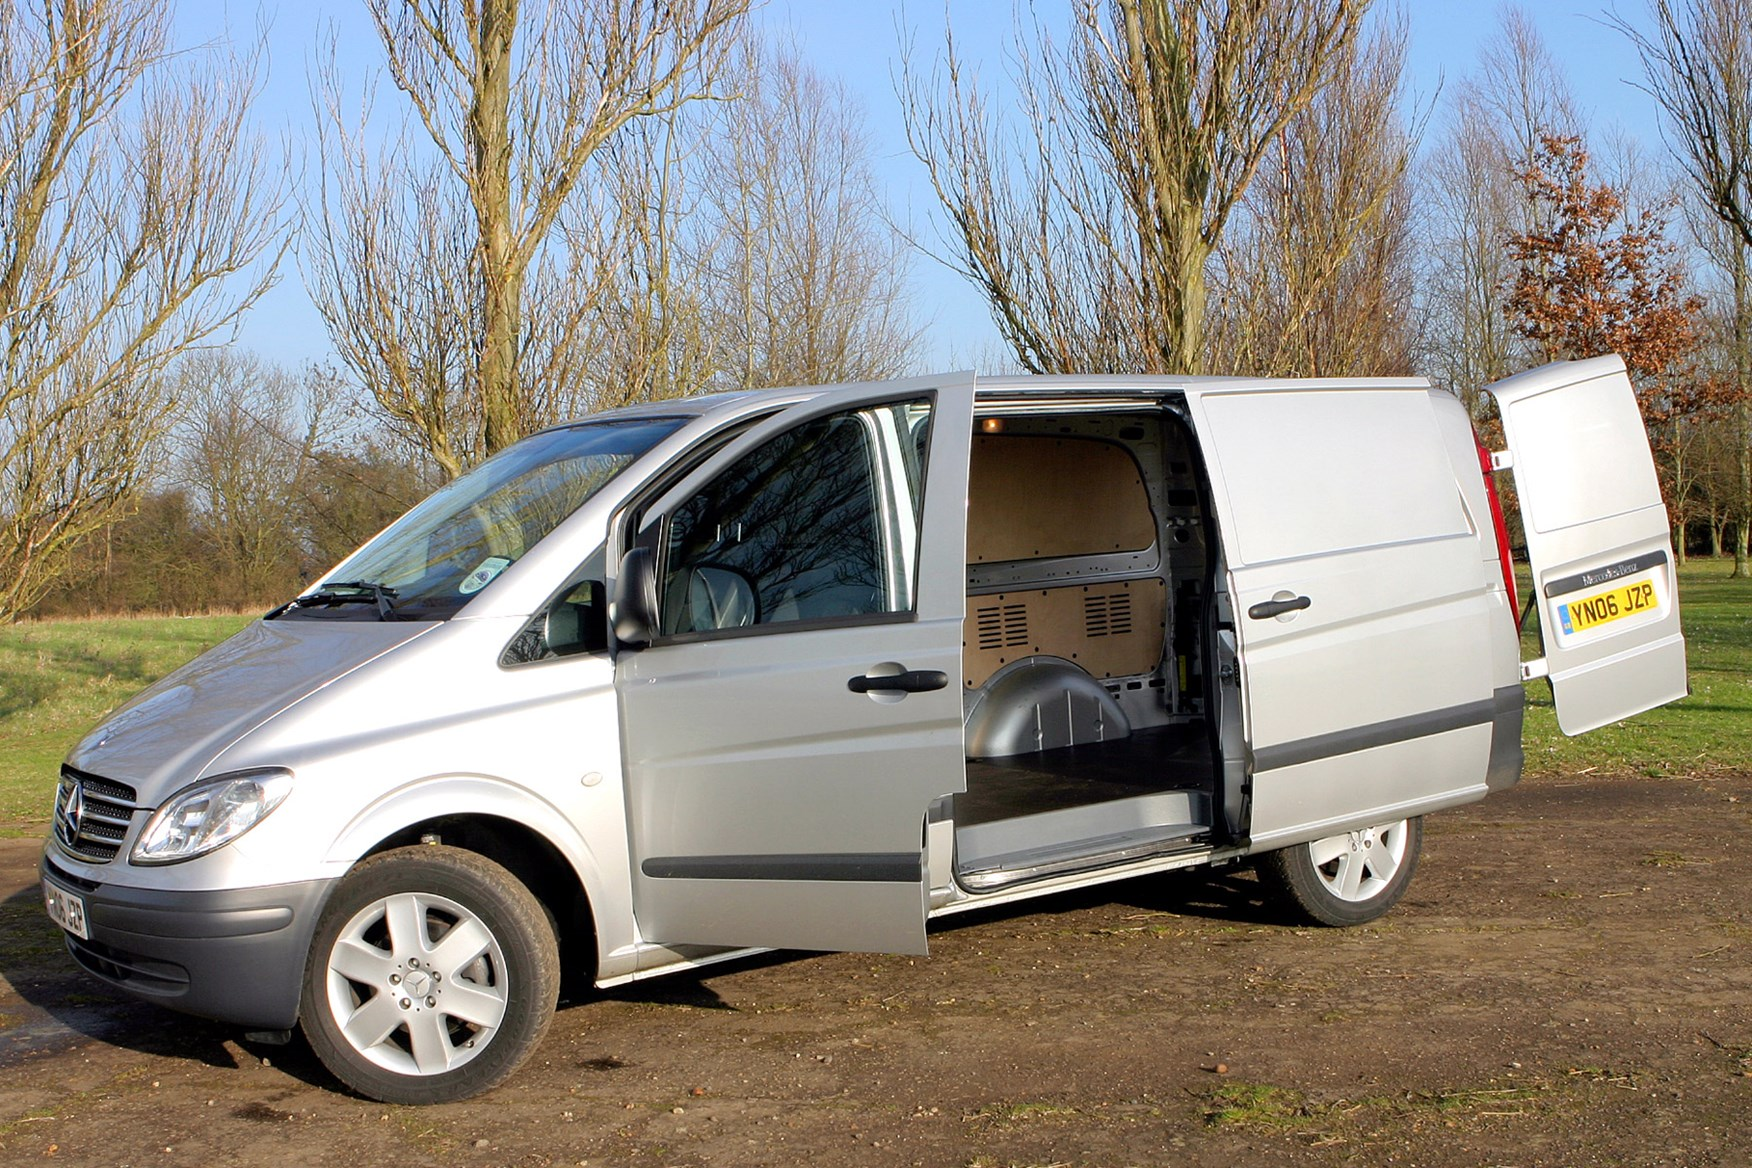 Mercedes-Benz Vito 2003-2014 review on Parkers Vans - load area access